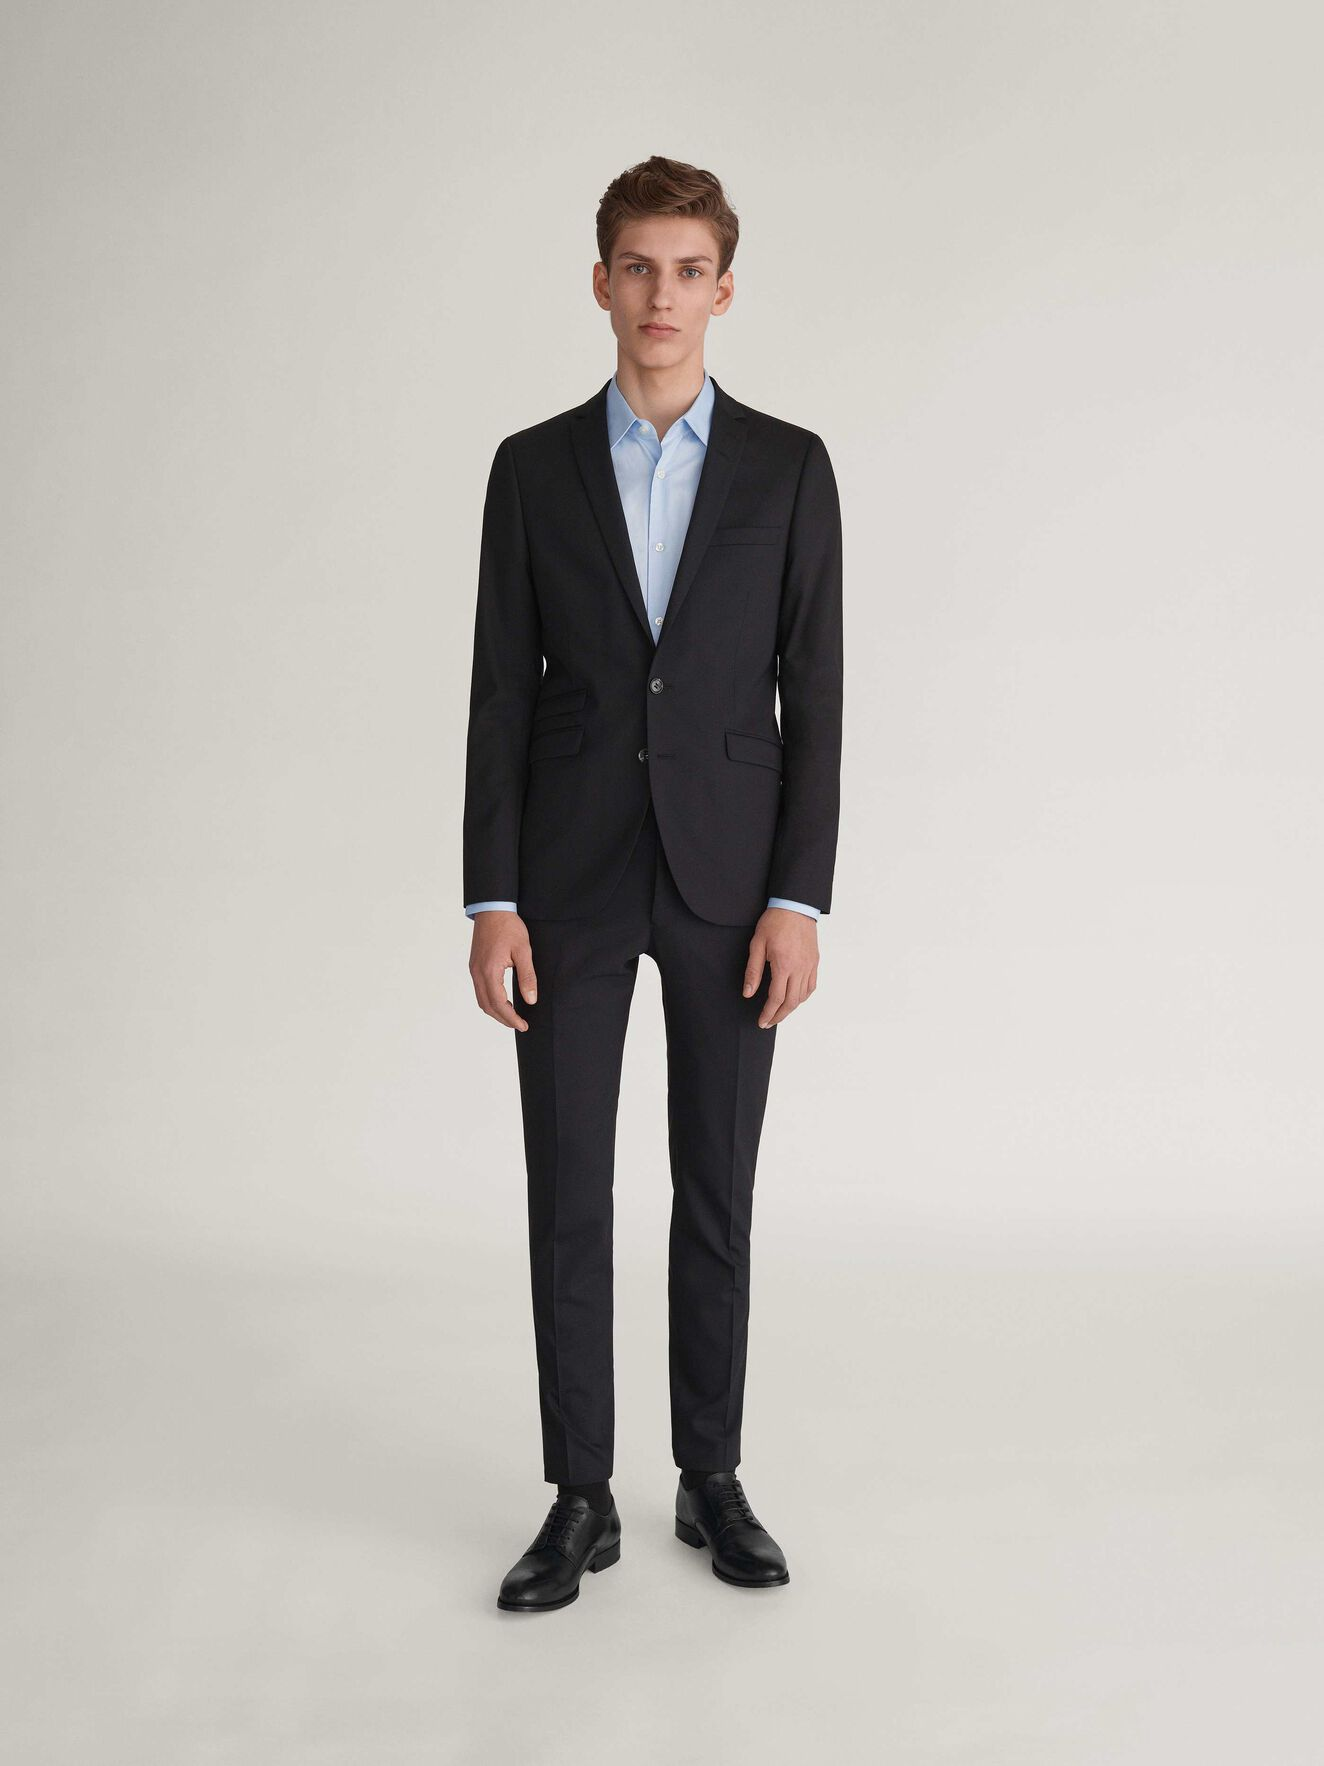 Nedvin Blazer in Black from Tiger of Sweden